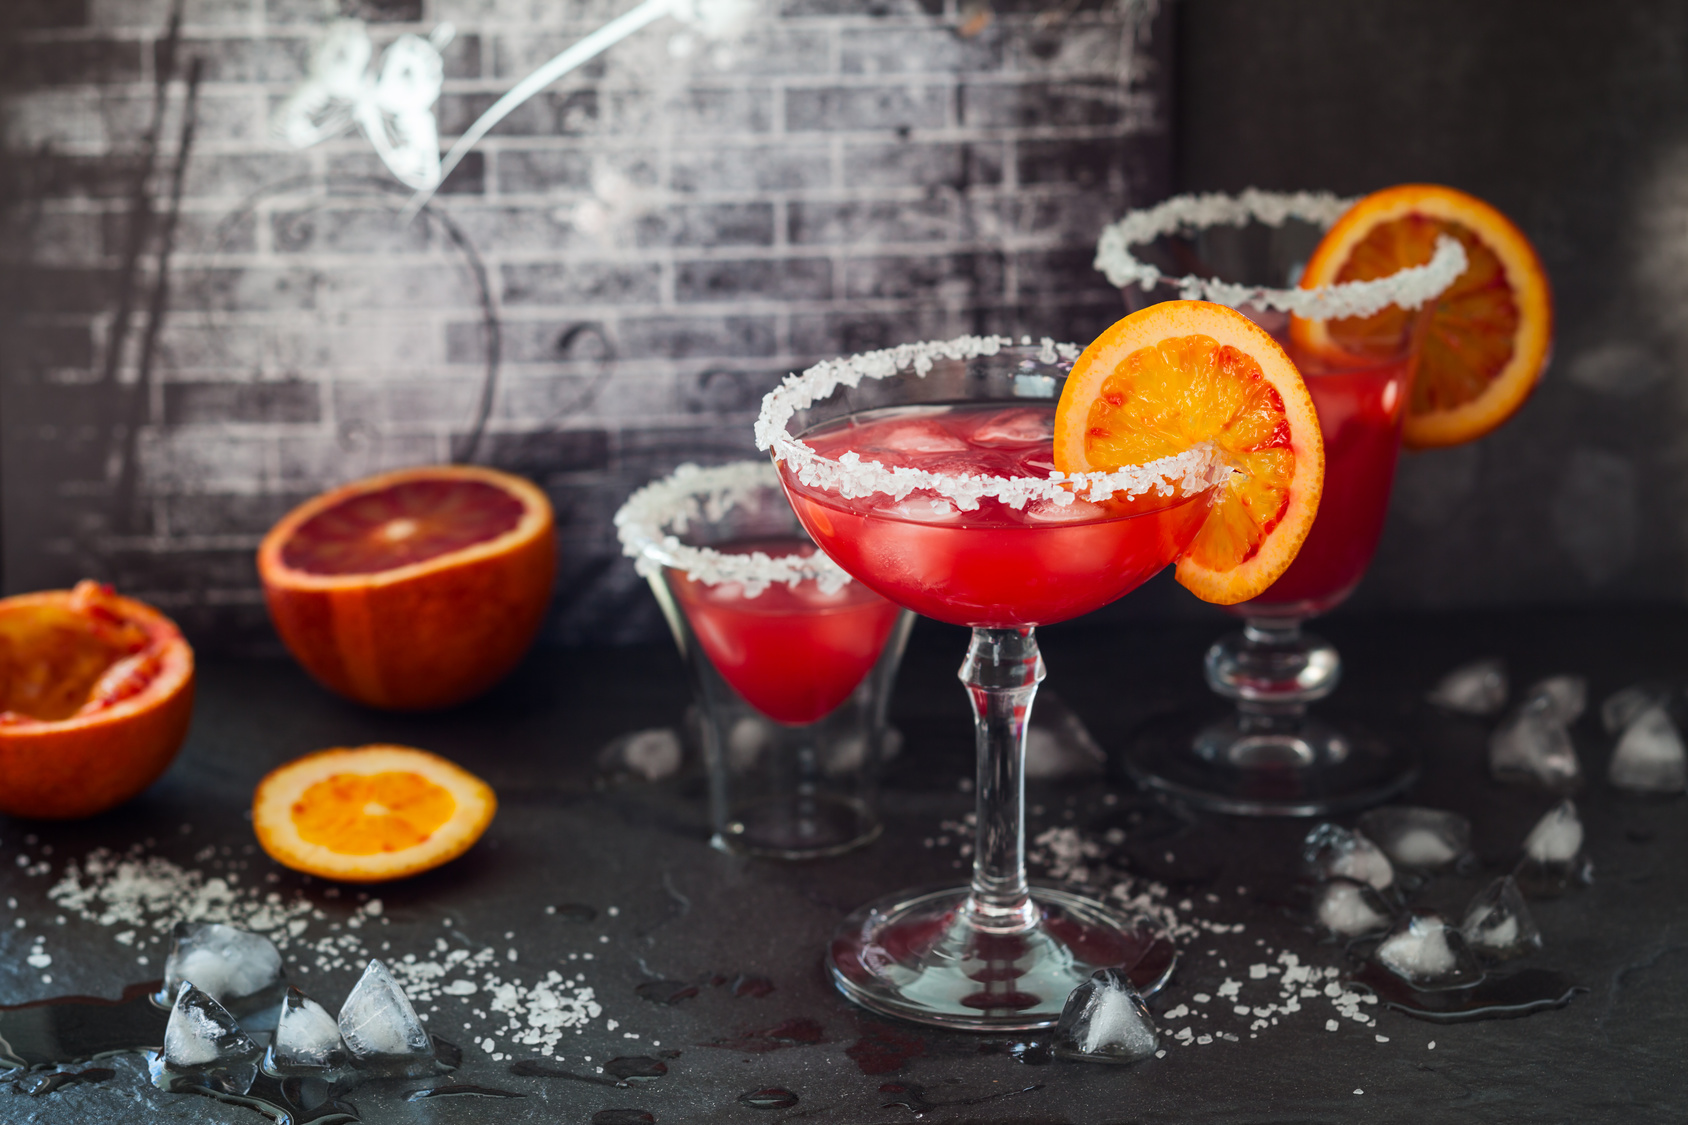 DRINK NA DZIŚ: BLOOD ORANGE MARGARITA